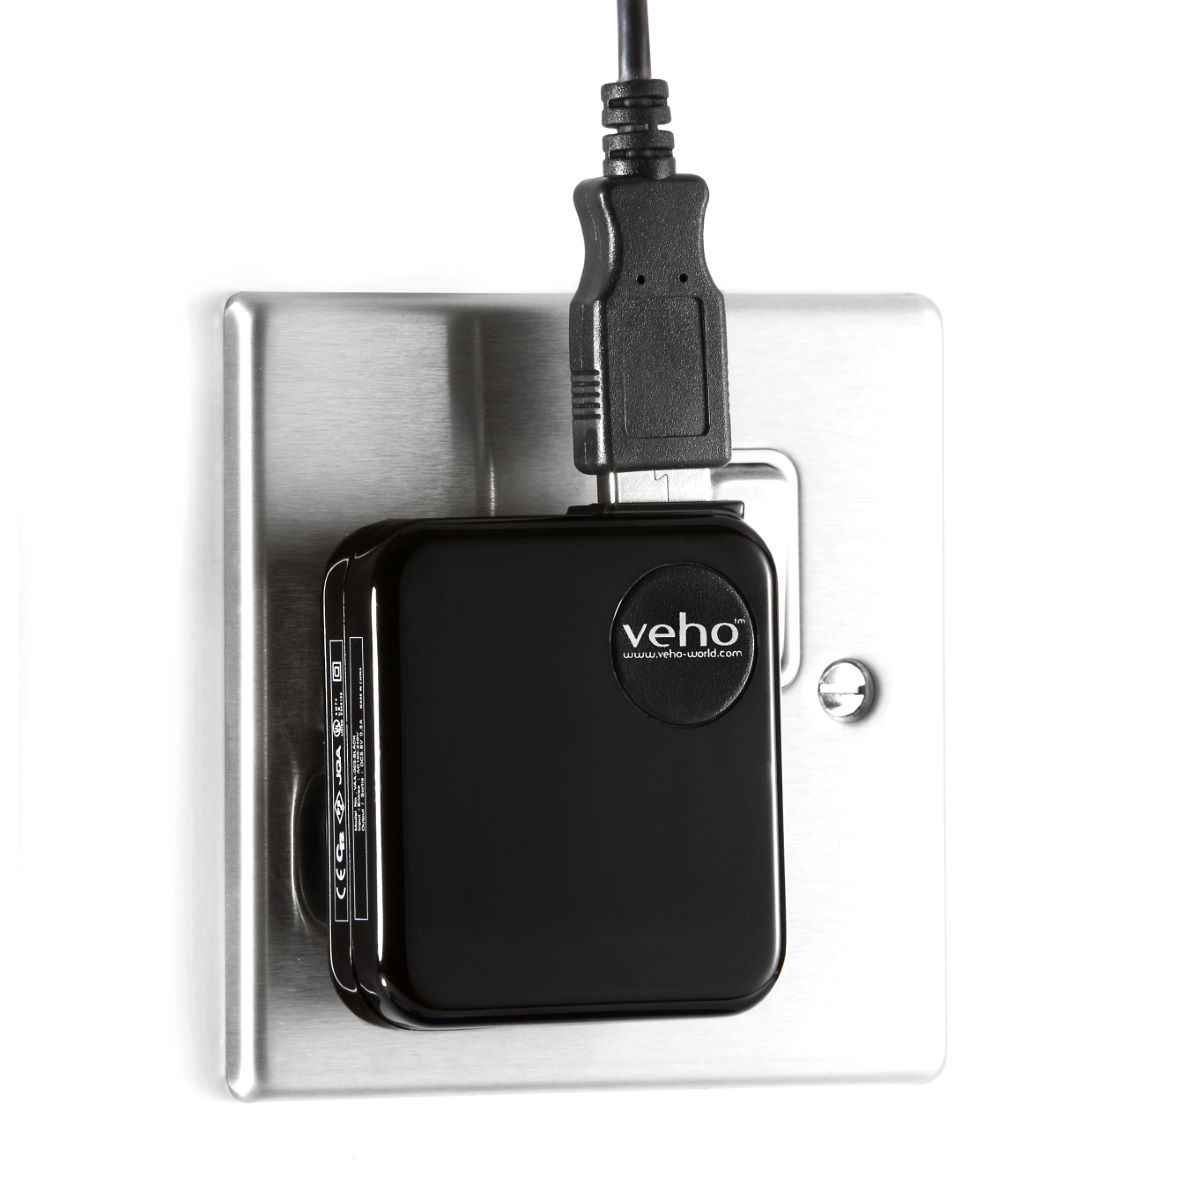 Product image of Veho Mains USB Charger   Batteries